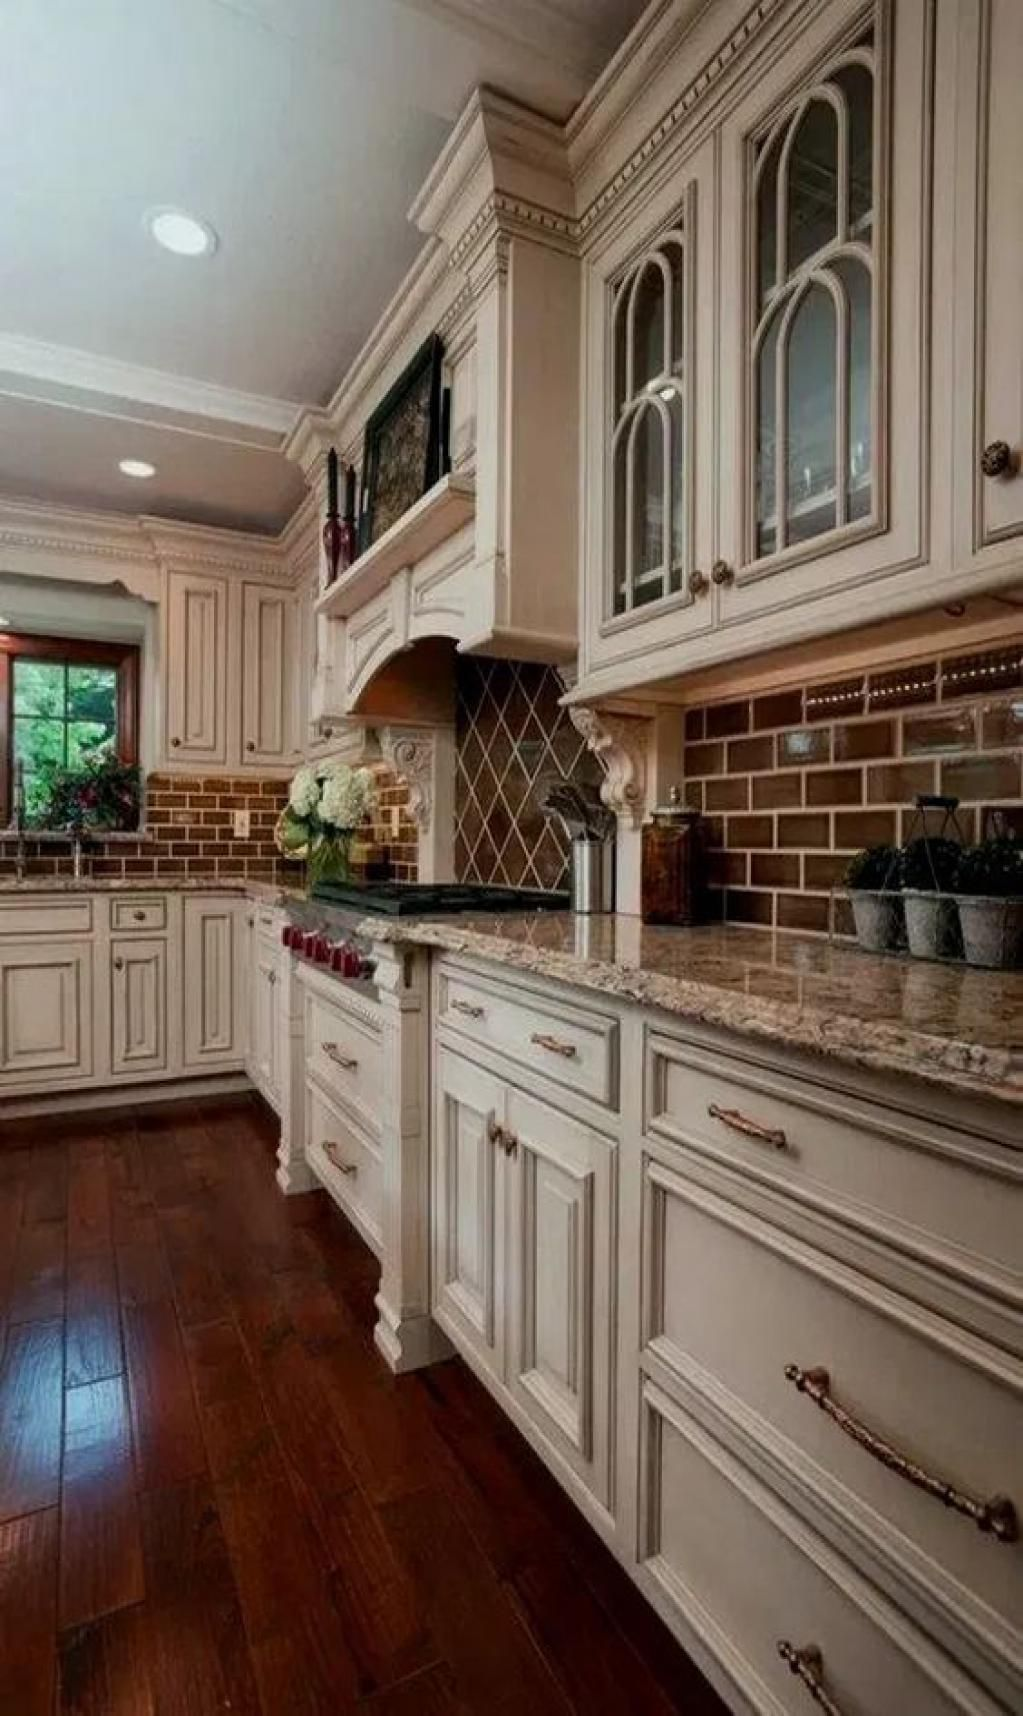 45 Fabulous Kitchen Cabinet Design For Apartment In 2020 Country Kitchen Cabinets Country Kitchen Designs French Country Kitchens